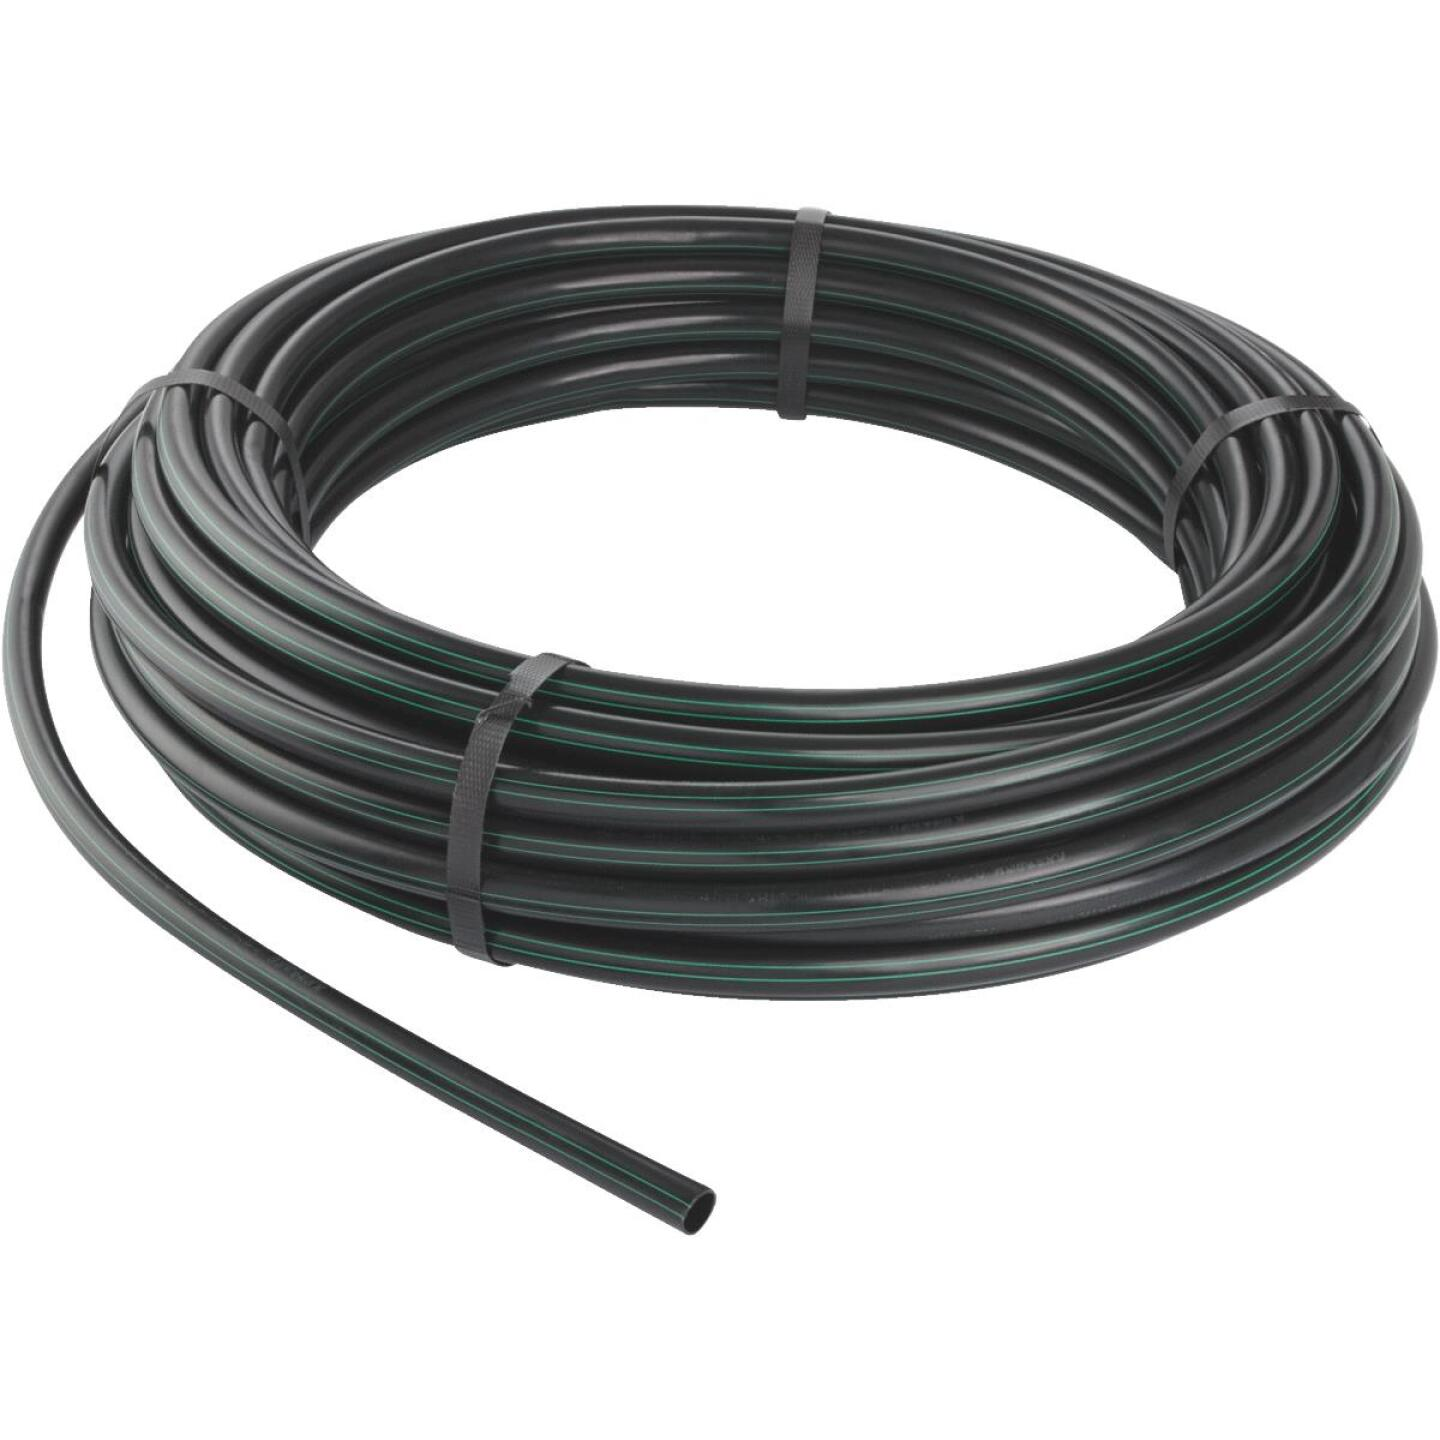 Rain Bird 1/2 In. X 100 Ft. Black Plastic Blank Drip Tubing Image 1